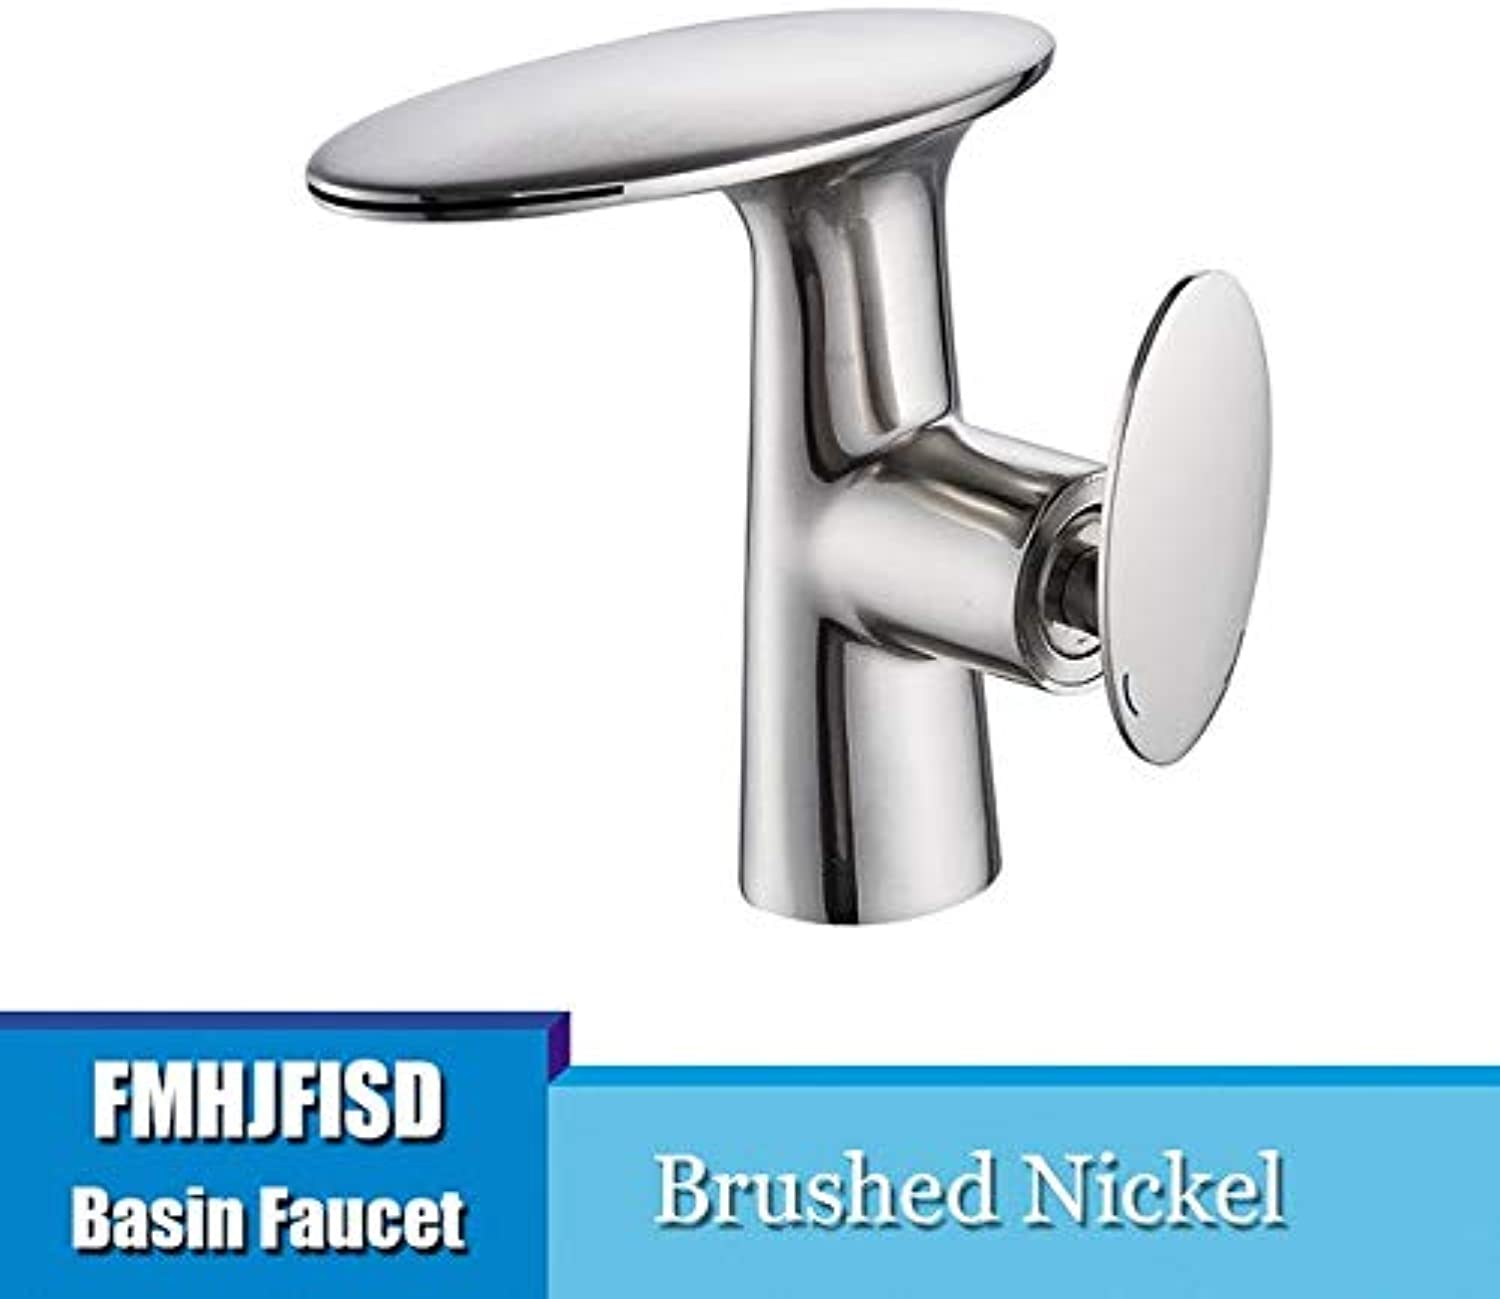 U-Enjoy Chandelier Bathroom Basin Waterfall Faucet Polished Top Quality Hot golden Cold Water Mixer Washbasin Faucets Deck Taps Mounted Free Shipping [Nickel]